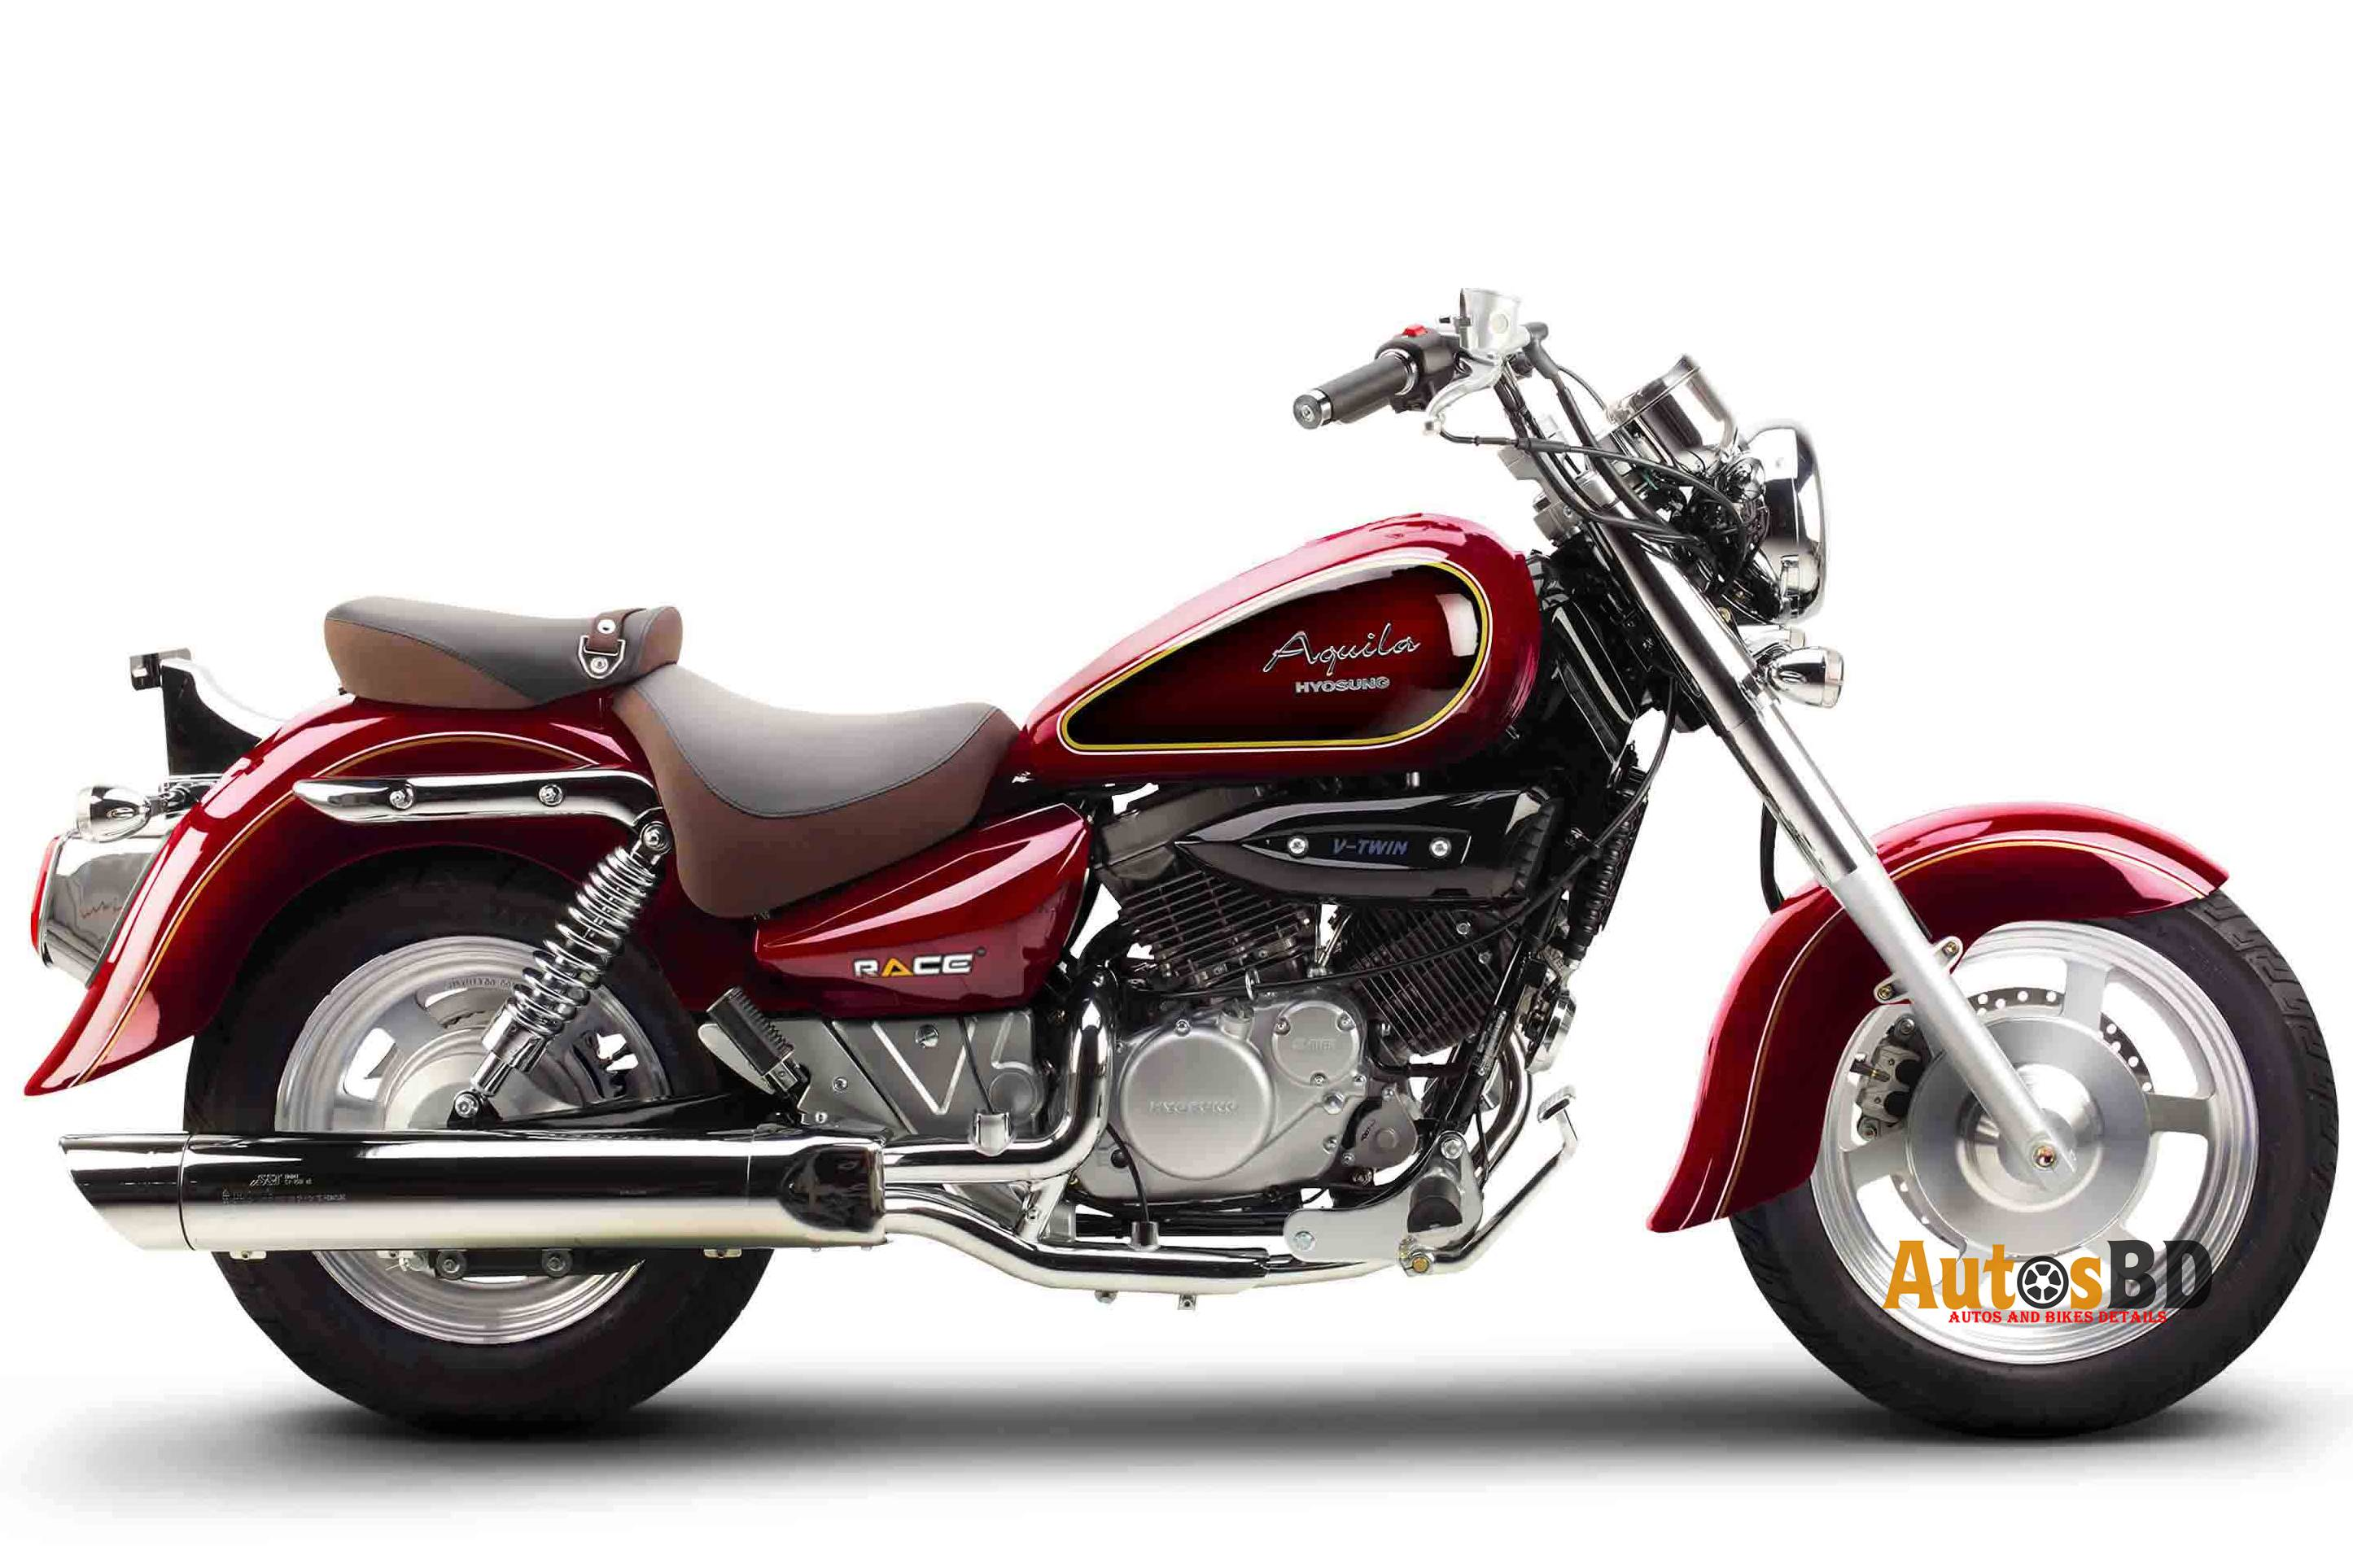 Race Hyosung Aquila 125 Motorcycle Specification